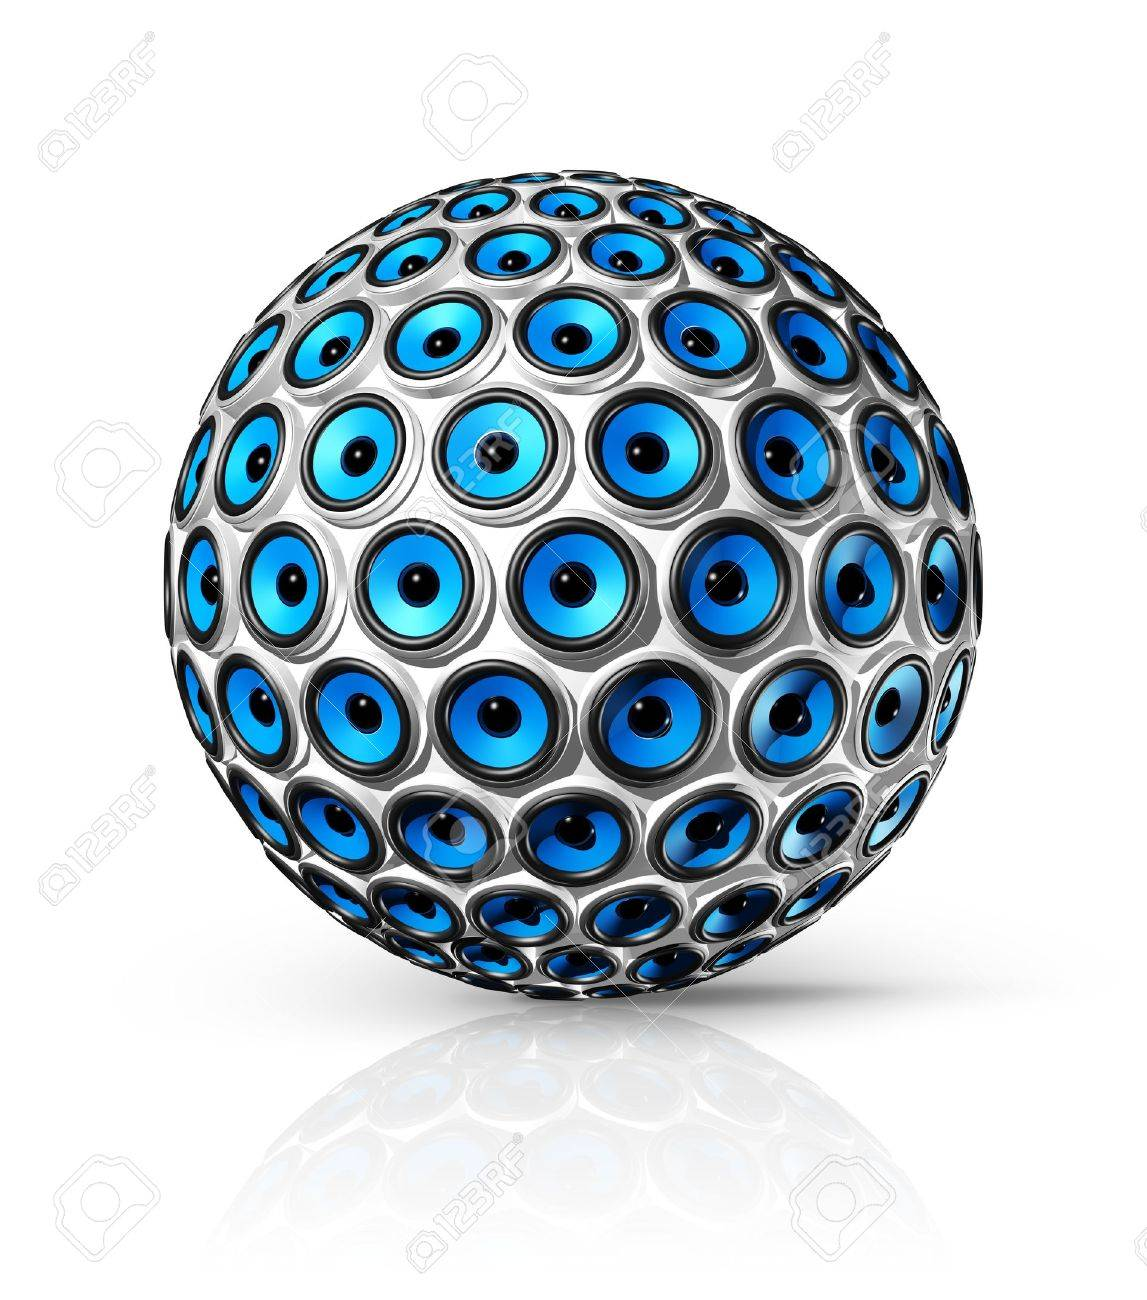 three dimensional blue speakers sphere isolated on white Stock Photo - 9958655